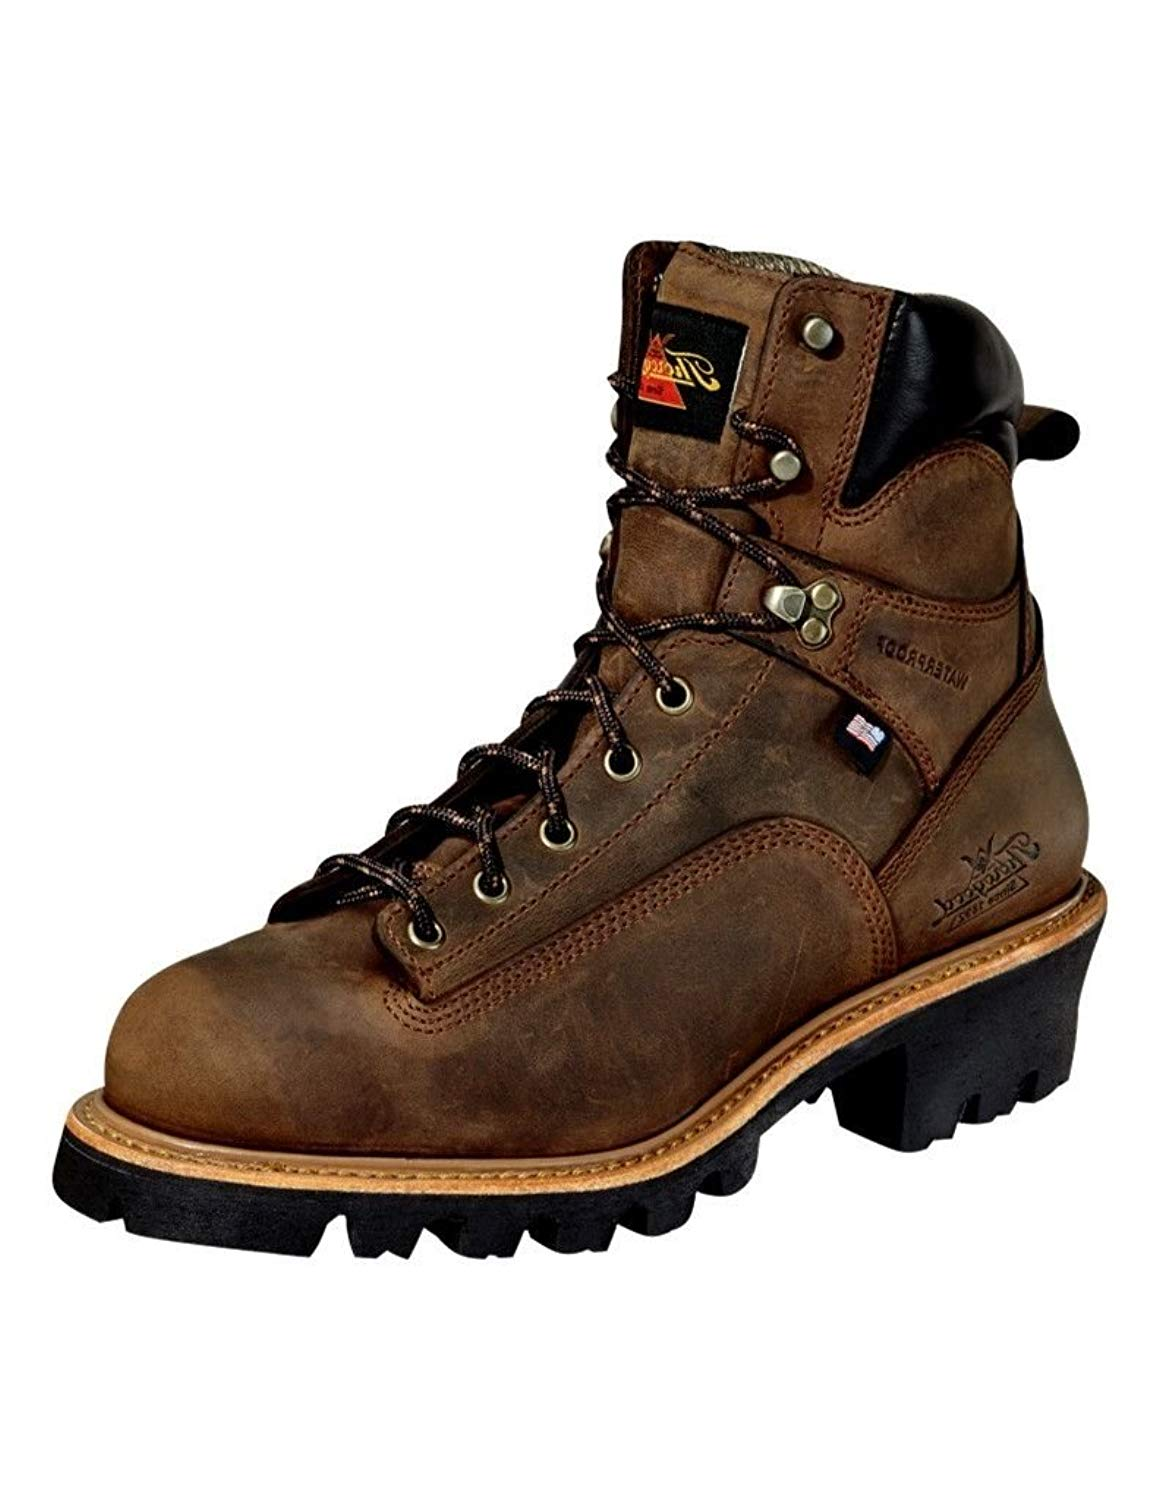 0ac6792ee06 Cheap Thorogood Logger Boots, find Thorogood Logger Boots deals on ...